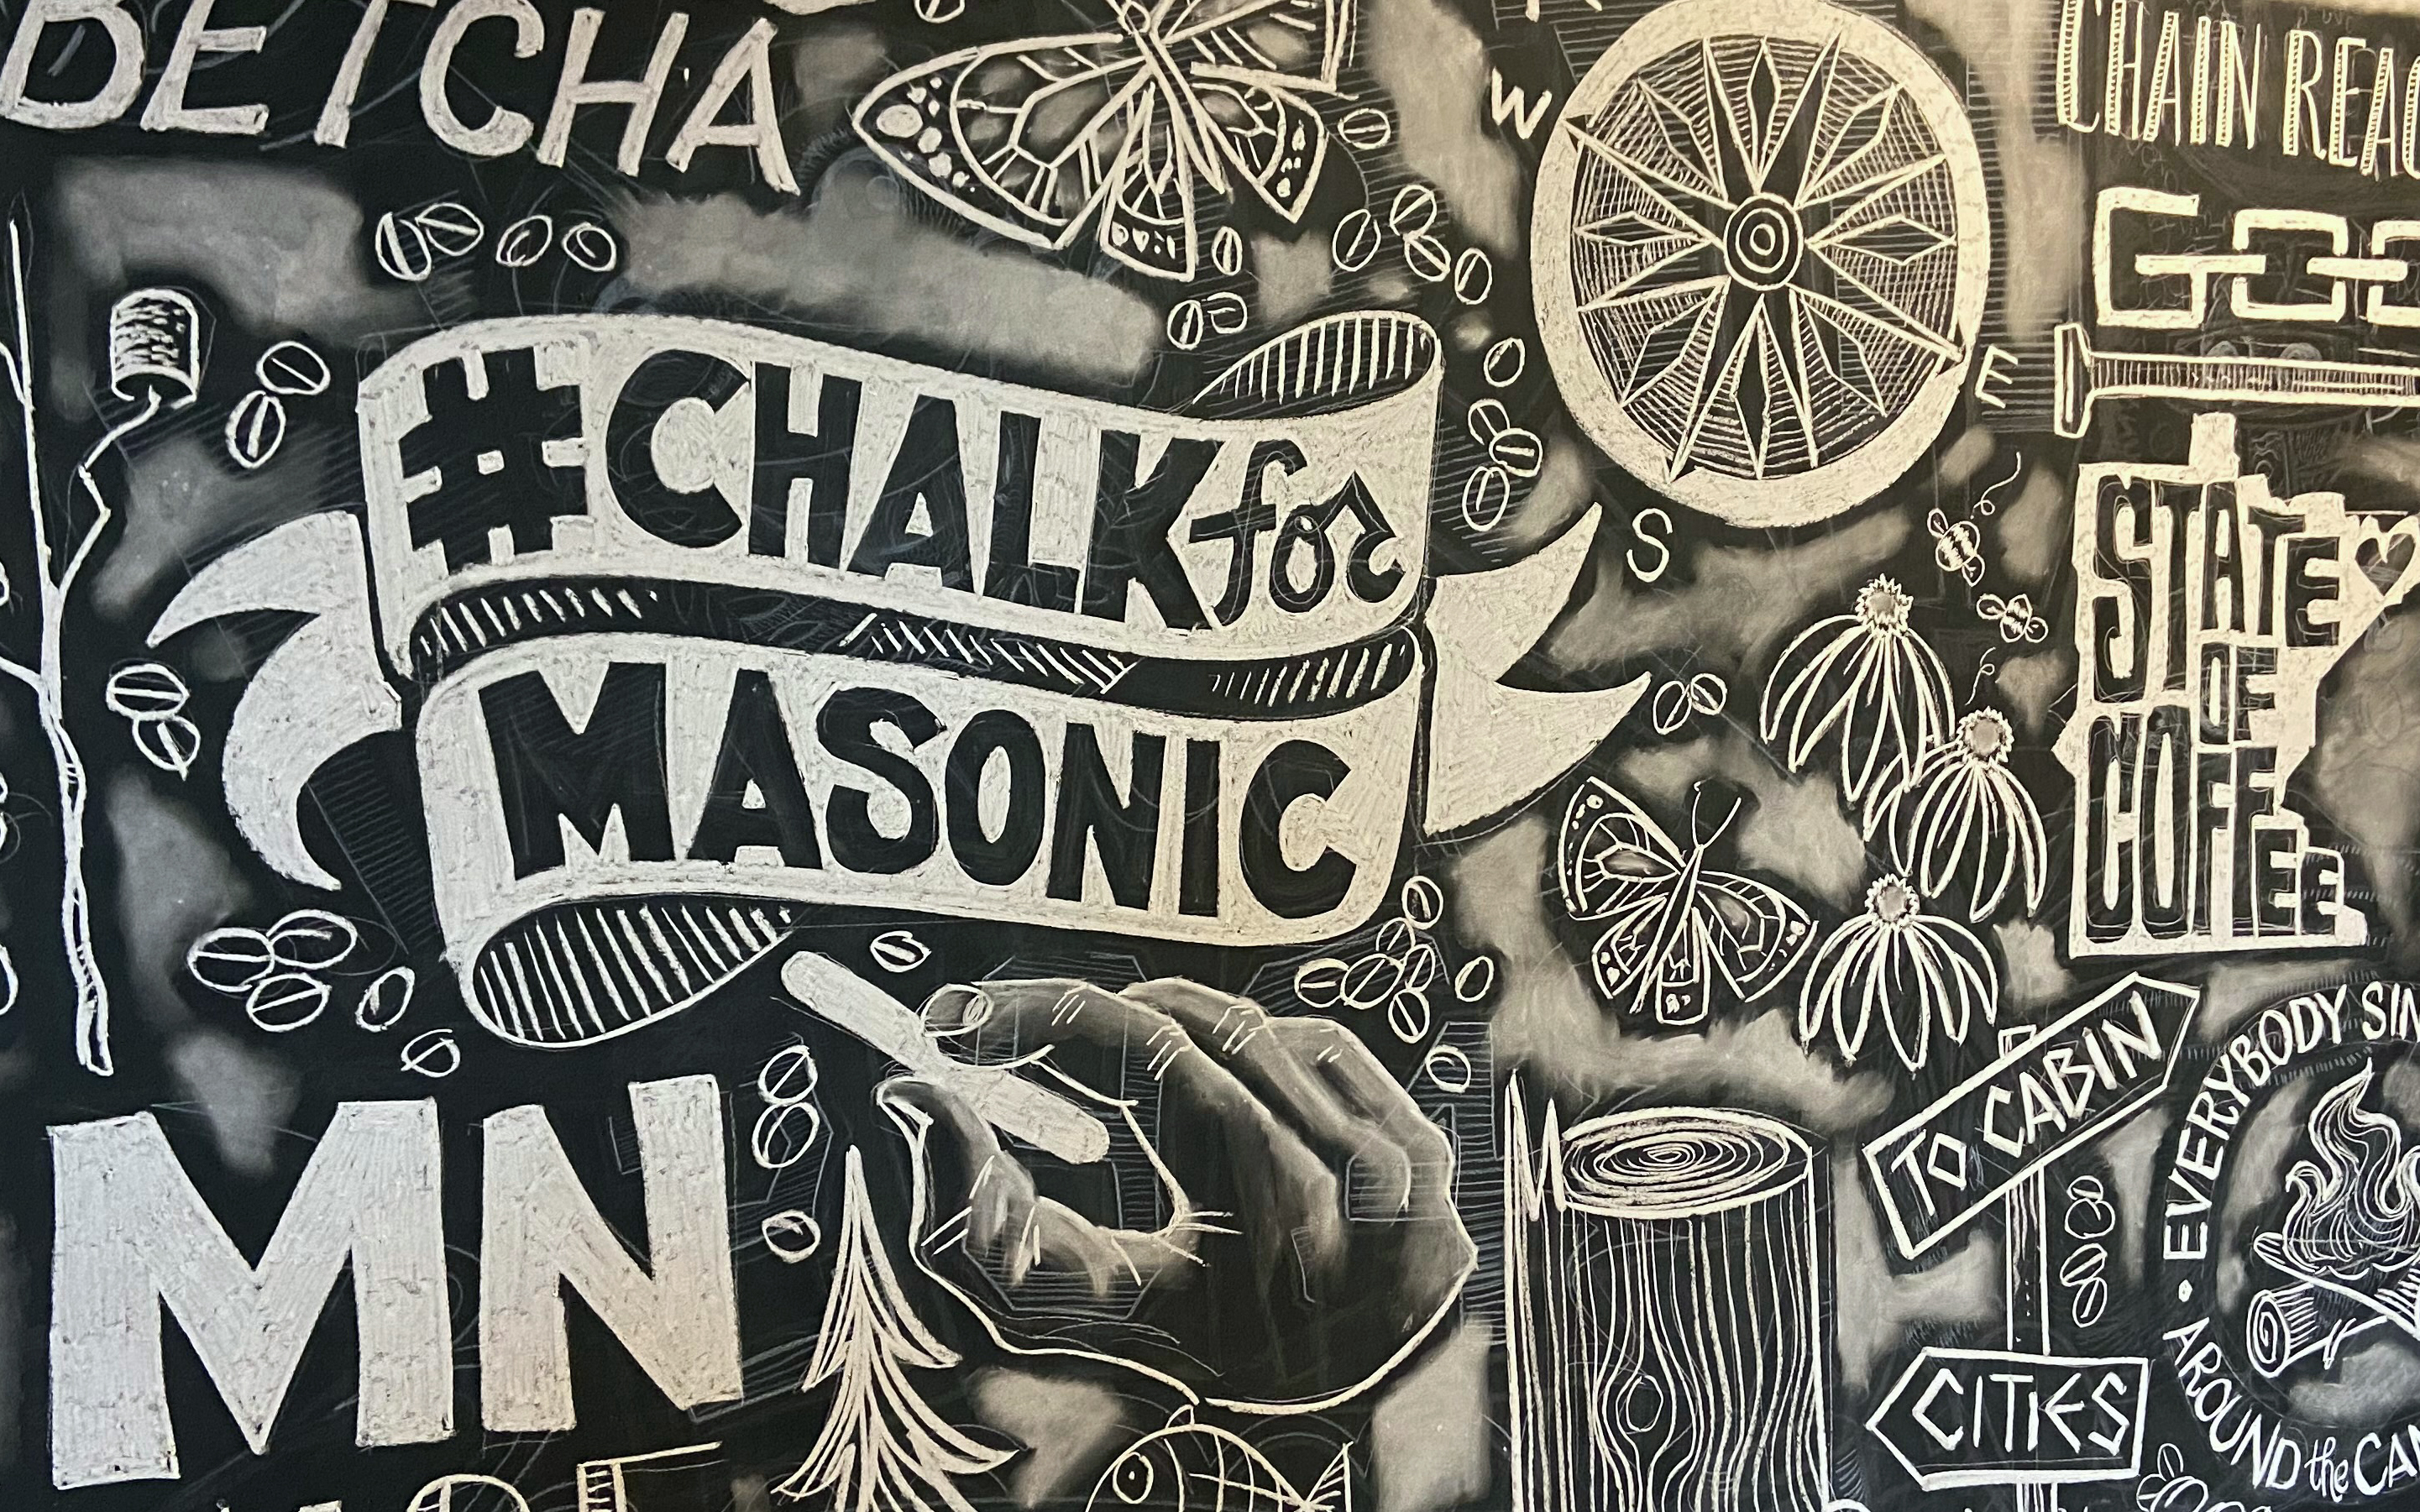 Create Art Fight Cancer Chalk For Masonic Event